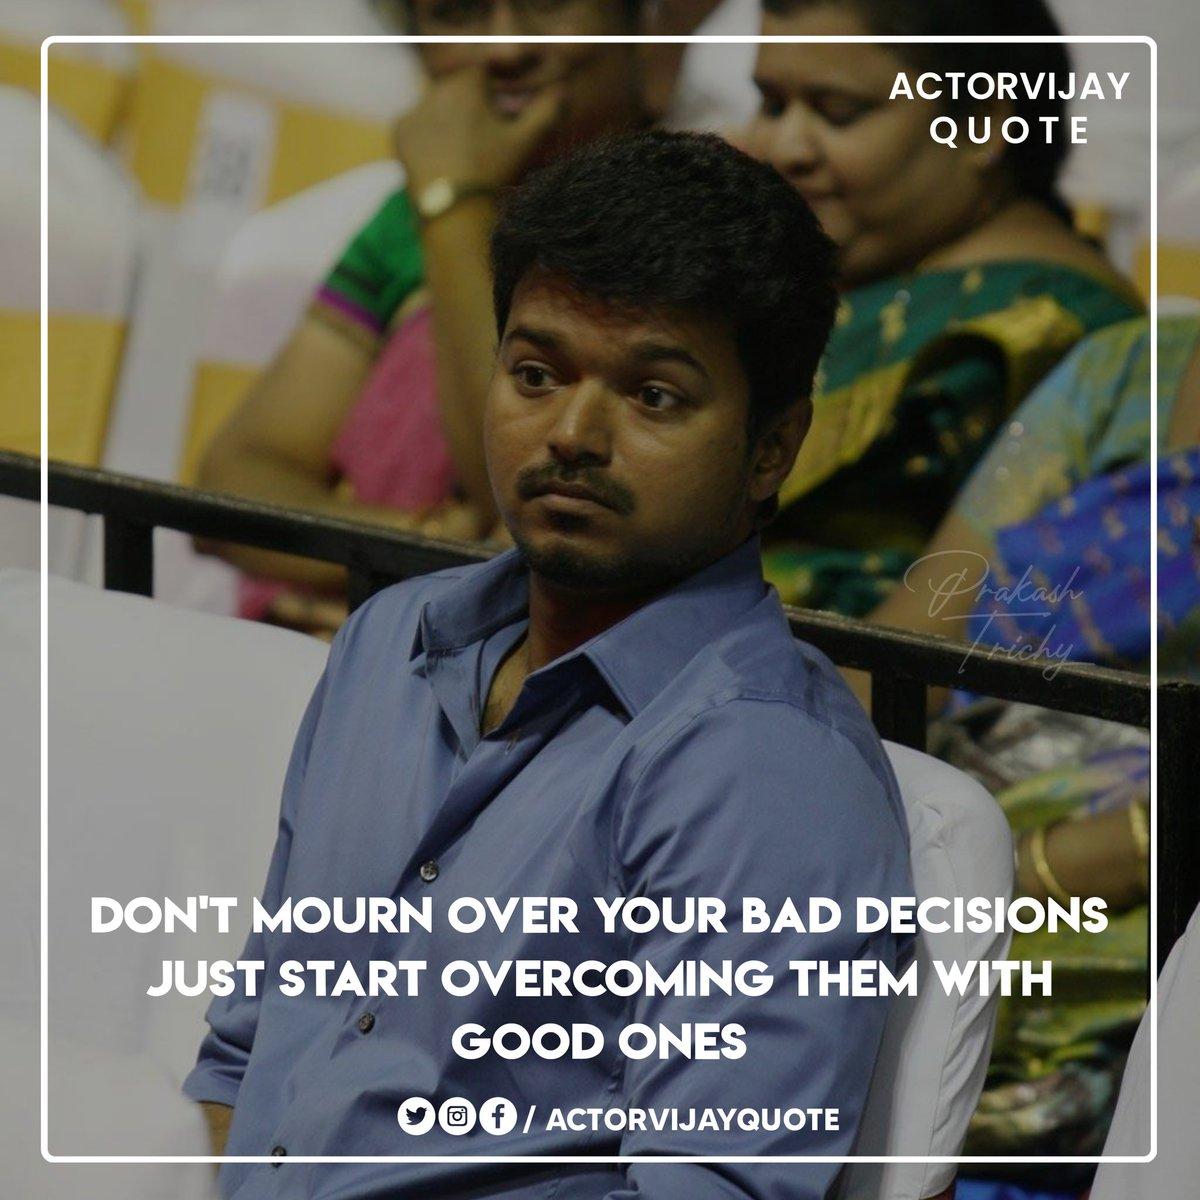 Don't mourn over your bad decisions just start overcoming them with good ones.  ✓ #Master • @actorvijay #ThalapathyVijay #SpreadVIJAYism #actorvijayquote  #motivation #success #Inspiration #quoteoftheday #quotes #quote #leadership #motivational pic.twitter.com/fvKqVKXIjE